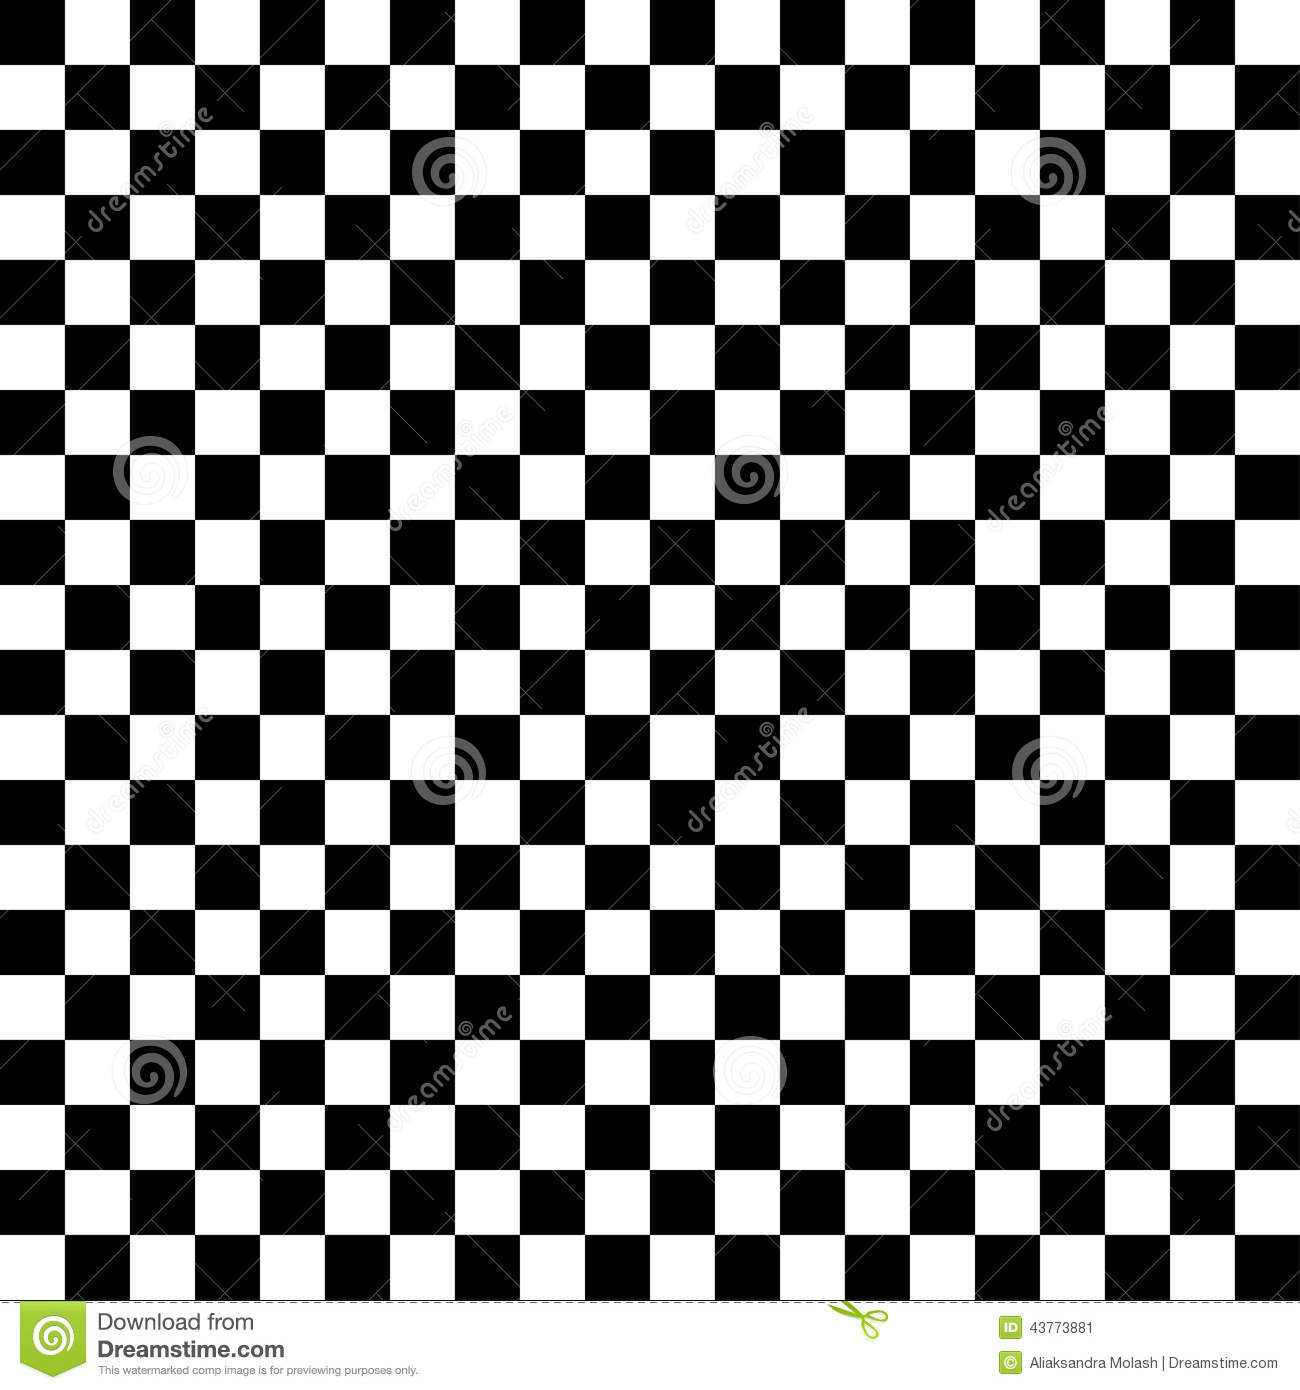 Disney Art Of Animation Floor Plan Black And White Checkered Abstract Background Stock Vector